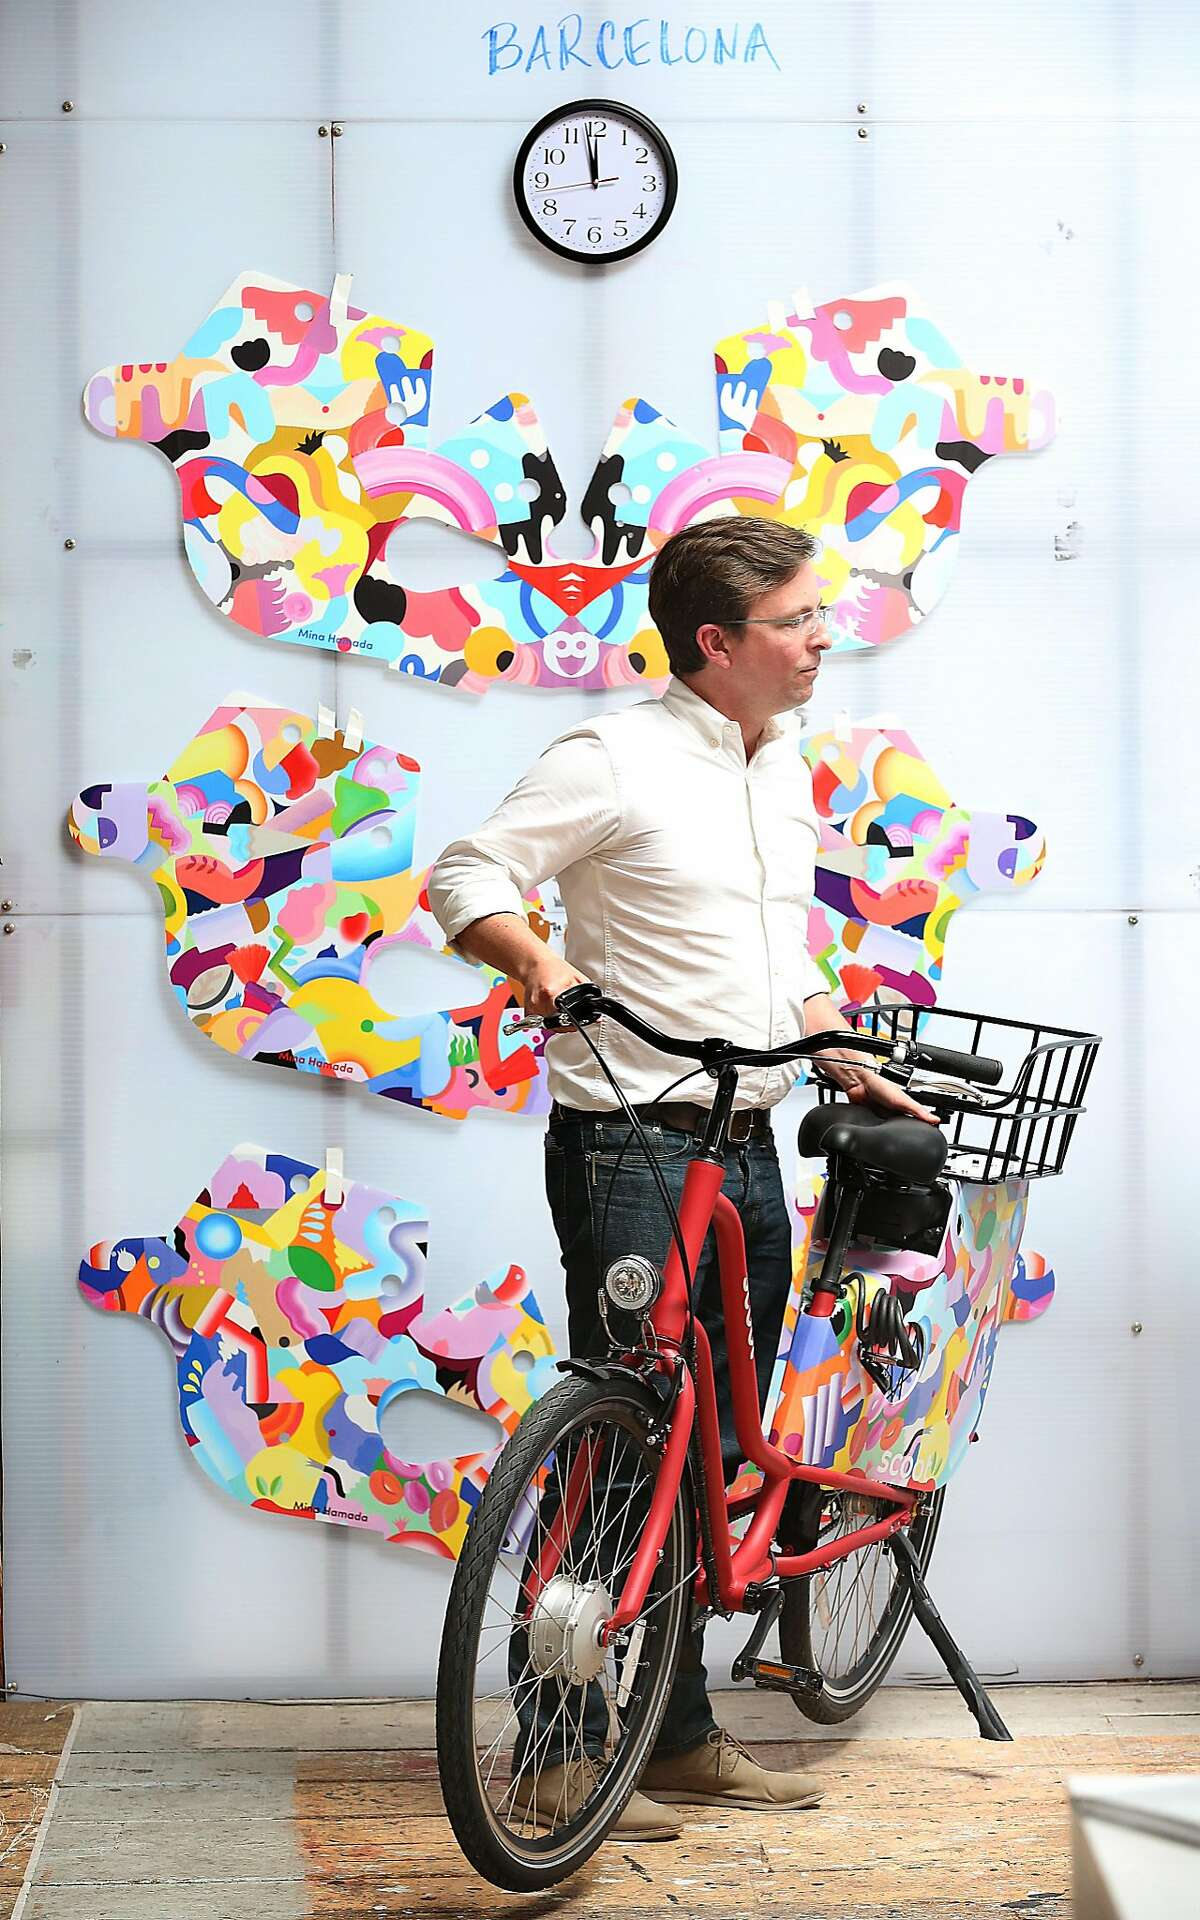 CEO Michael Keating of Scoot, a San Francisco-based shared electric mobility company, shows artwork that will be included on their bikes in Barcelona on Thursday, May 24, 2018 in San Francisco, Calif.